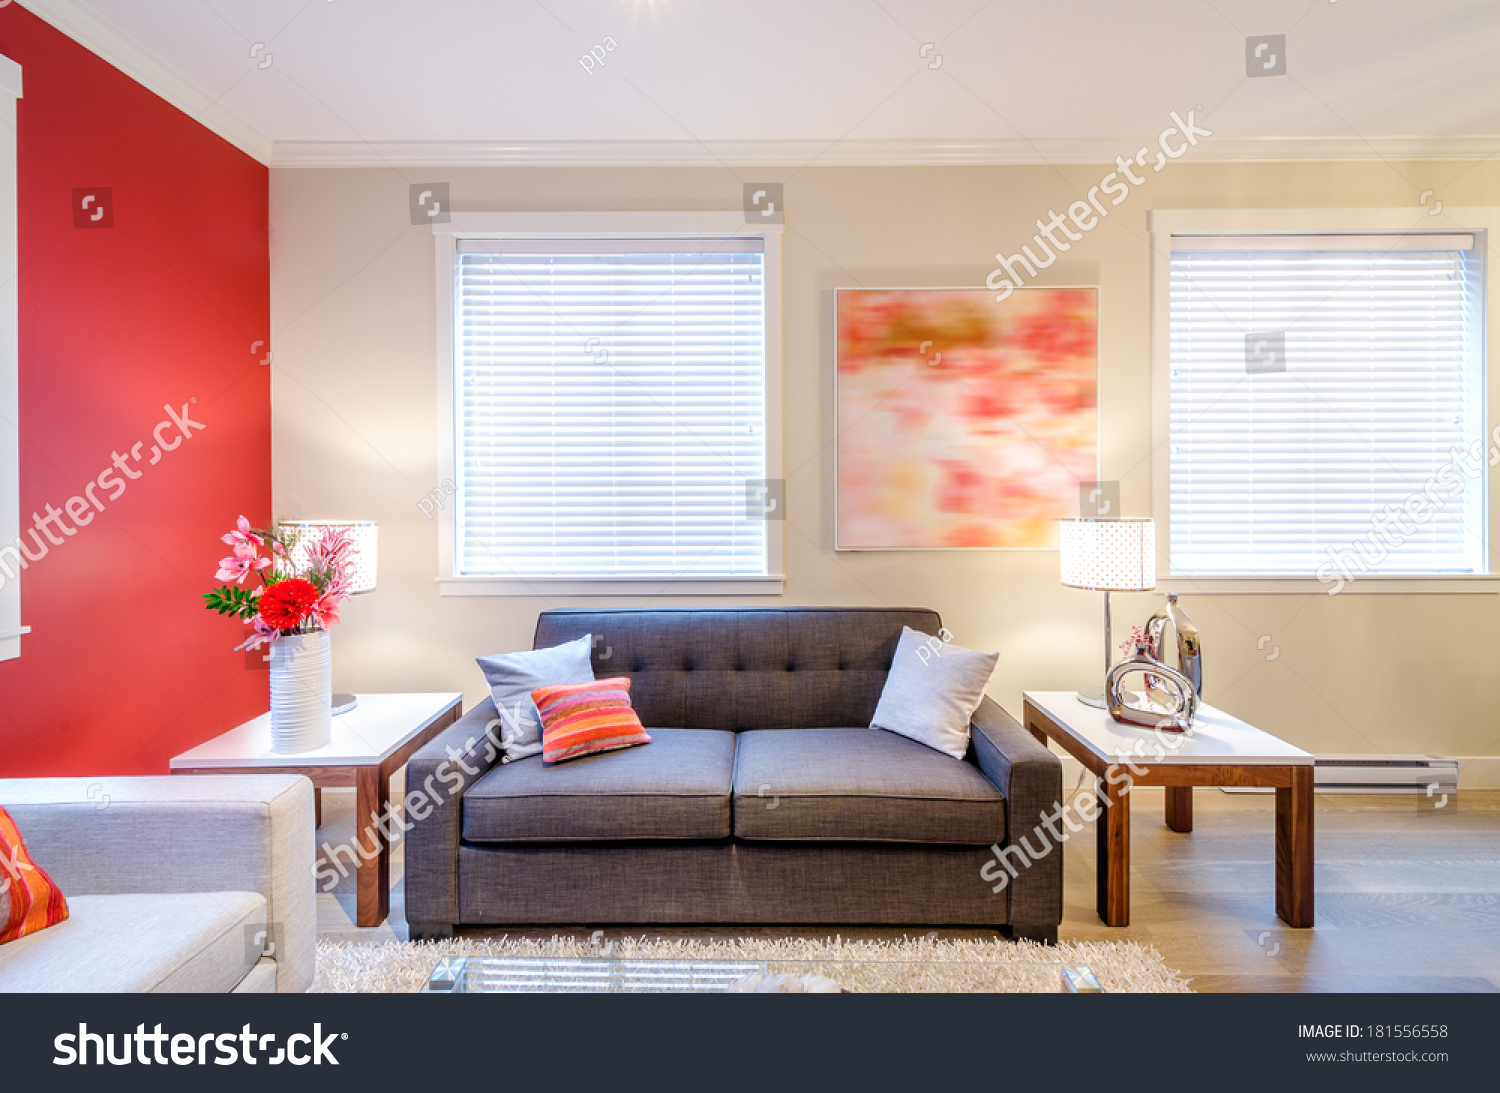 Modern red living room interior design stock photo for Modern living room red